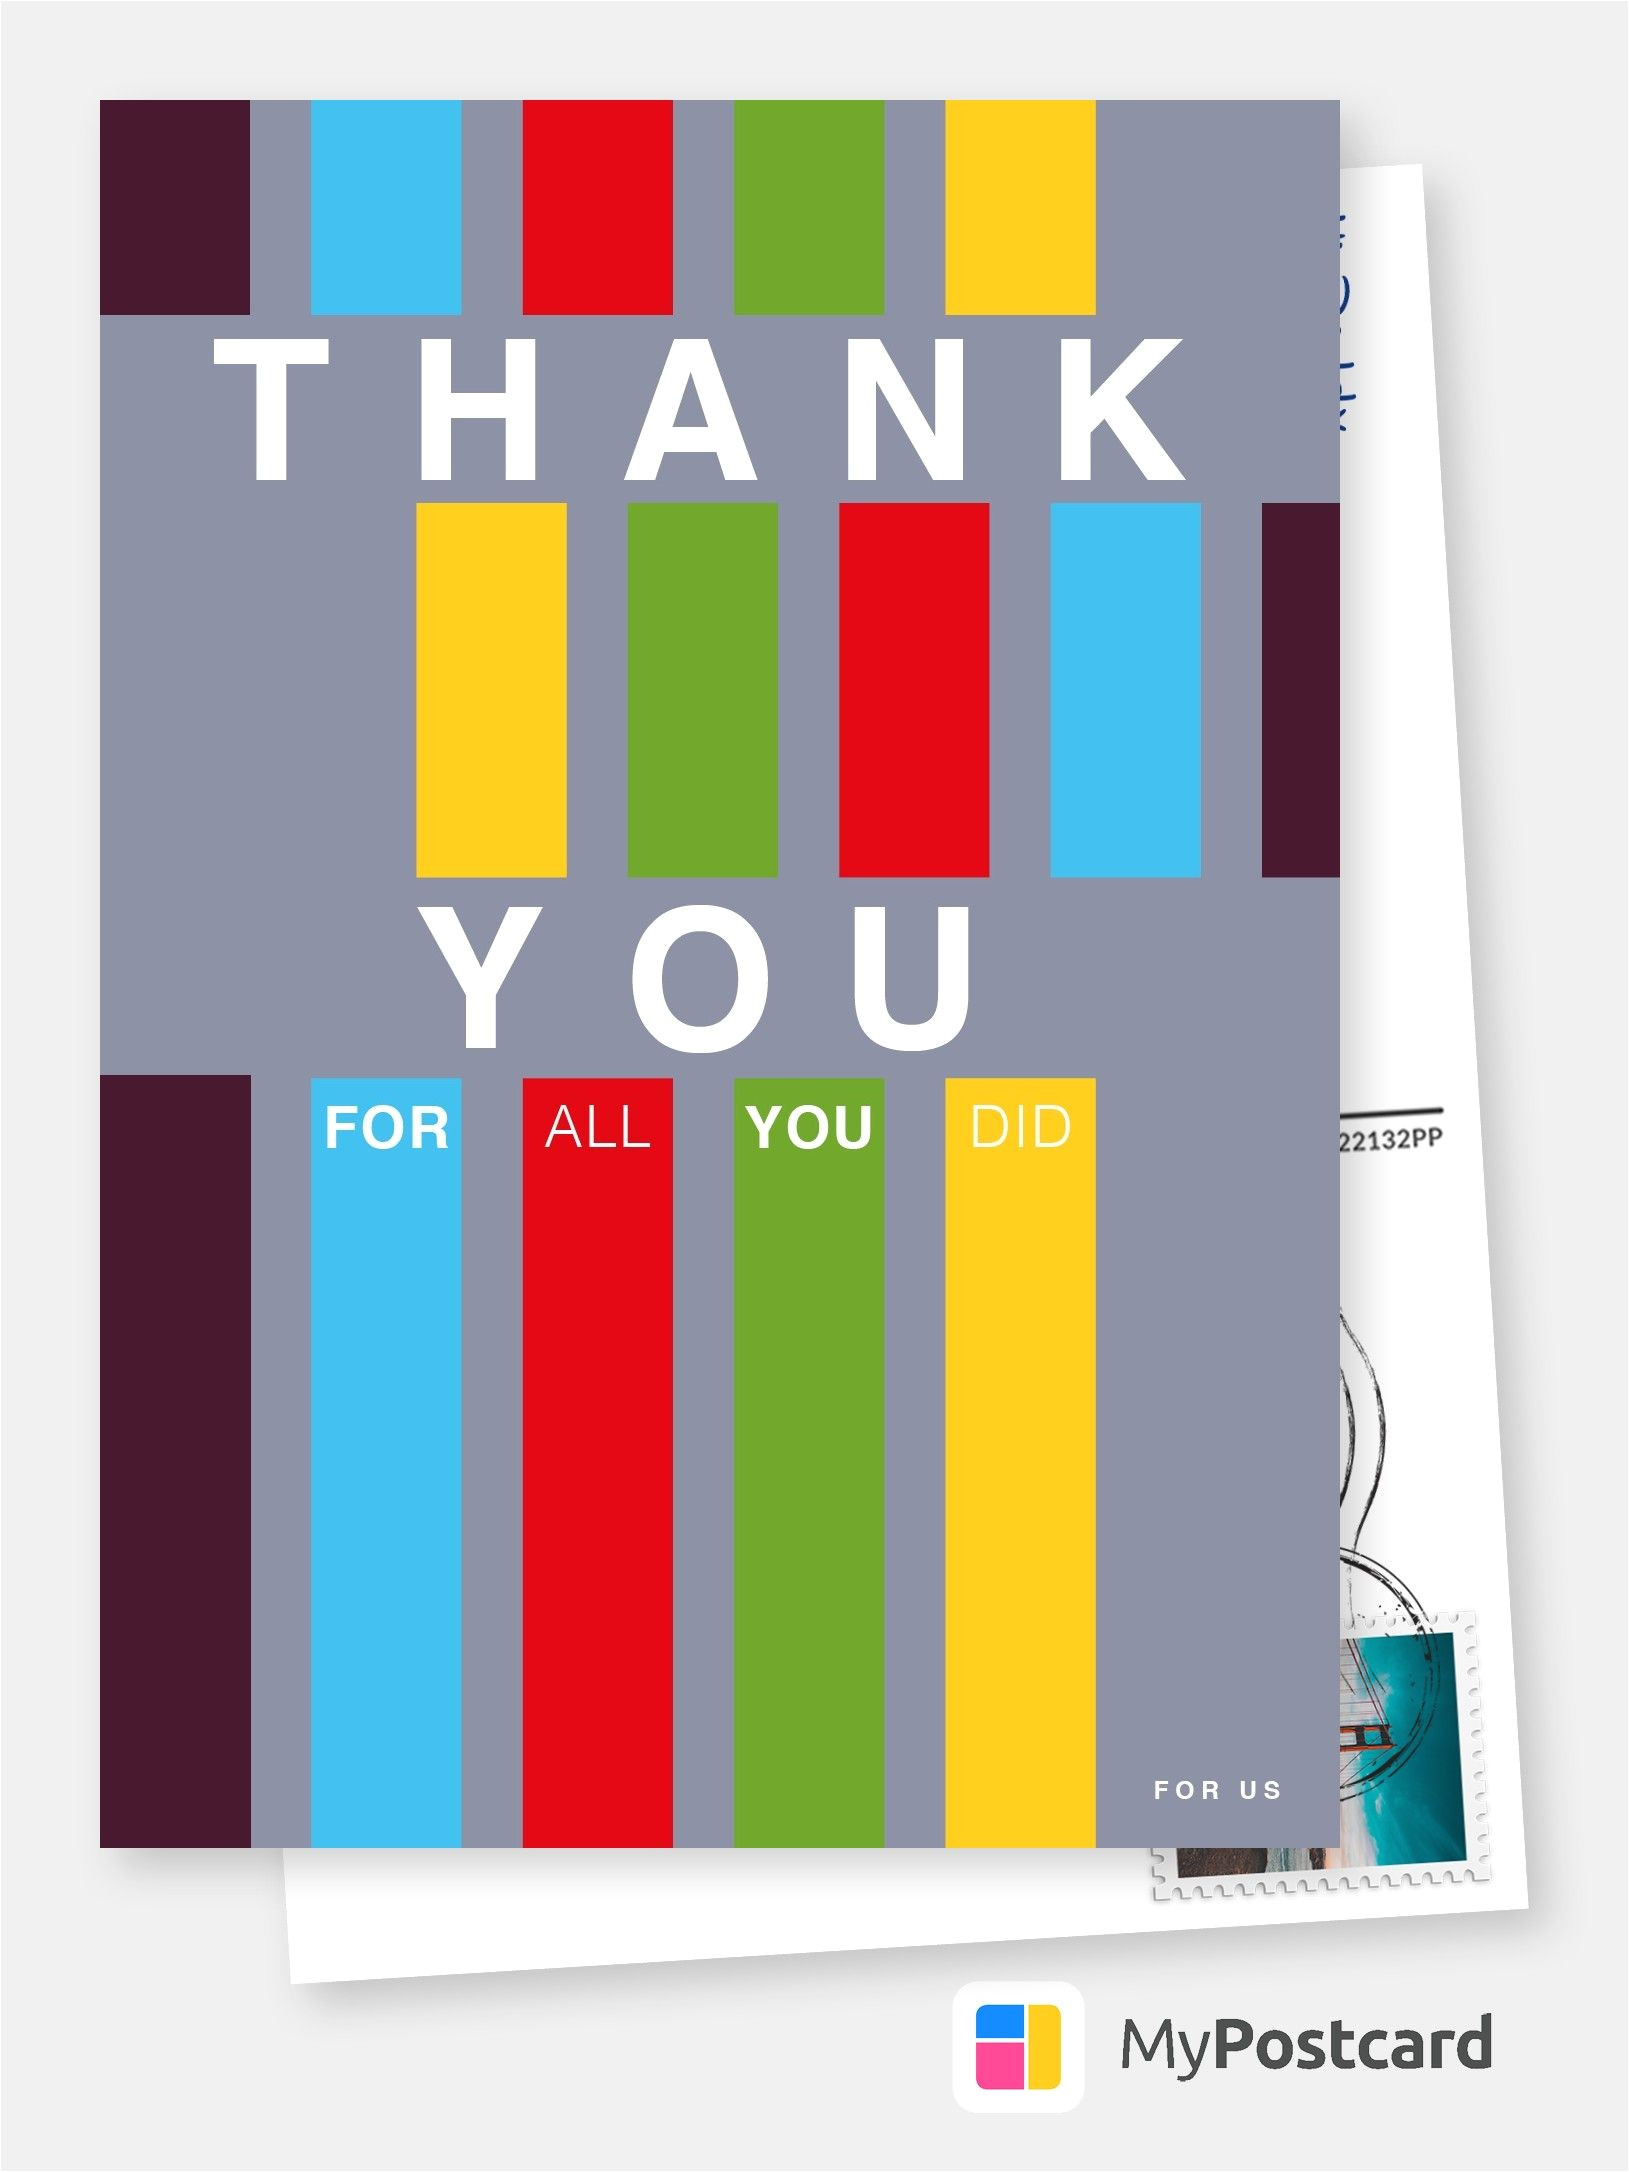 Thank You Message for Gift Card Thank You for All You Did Ermutigungskarten Spruche